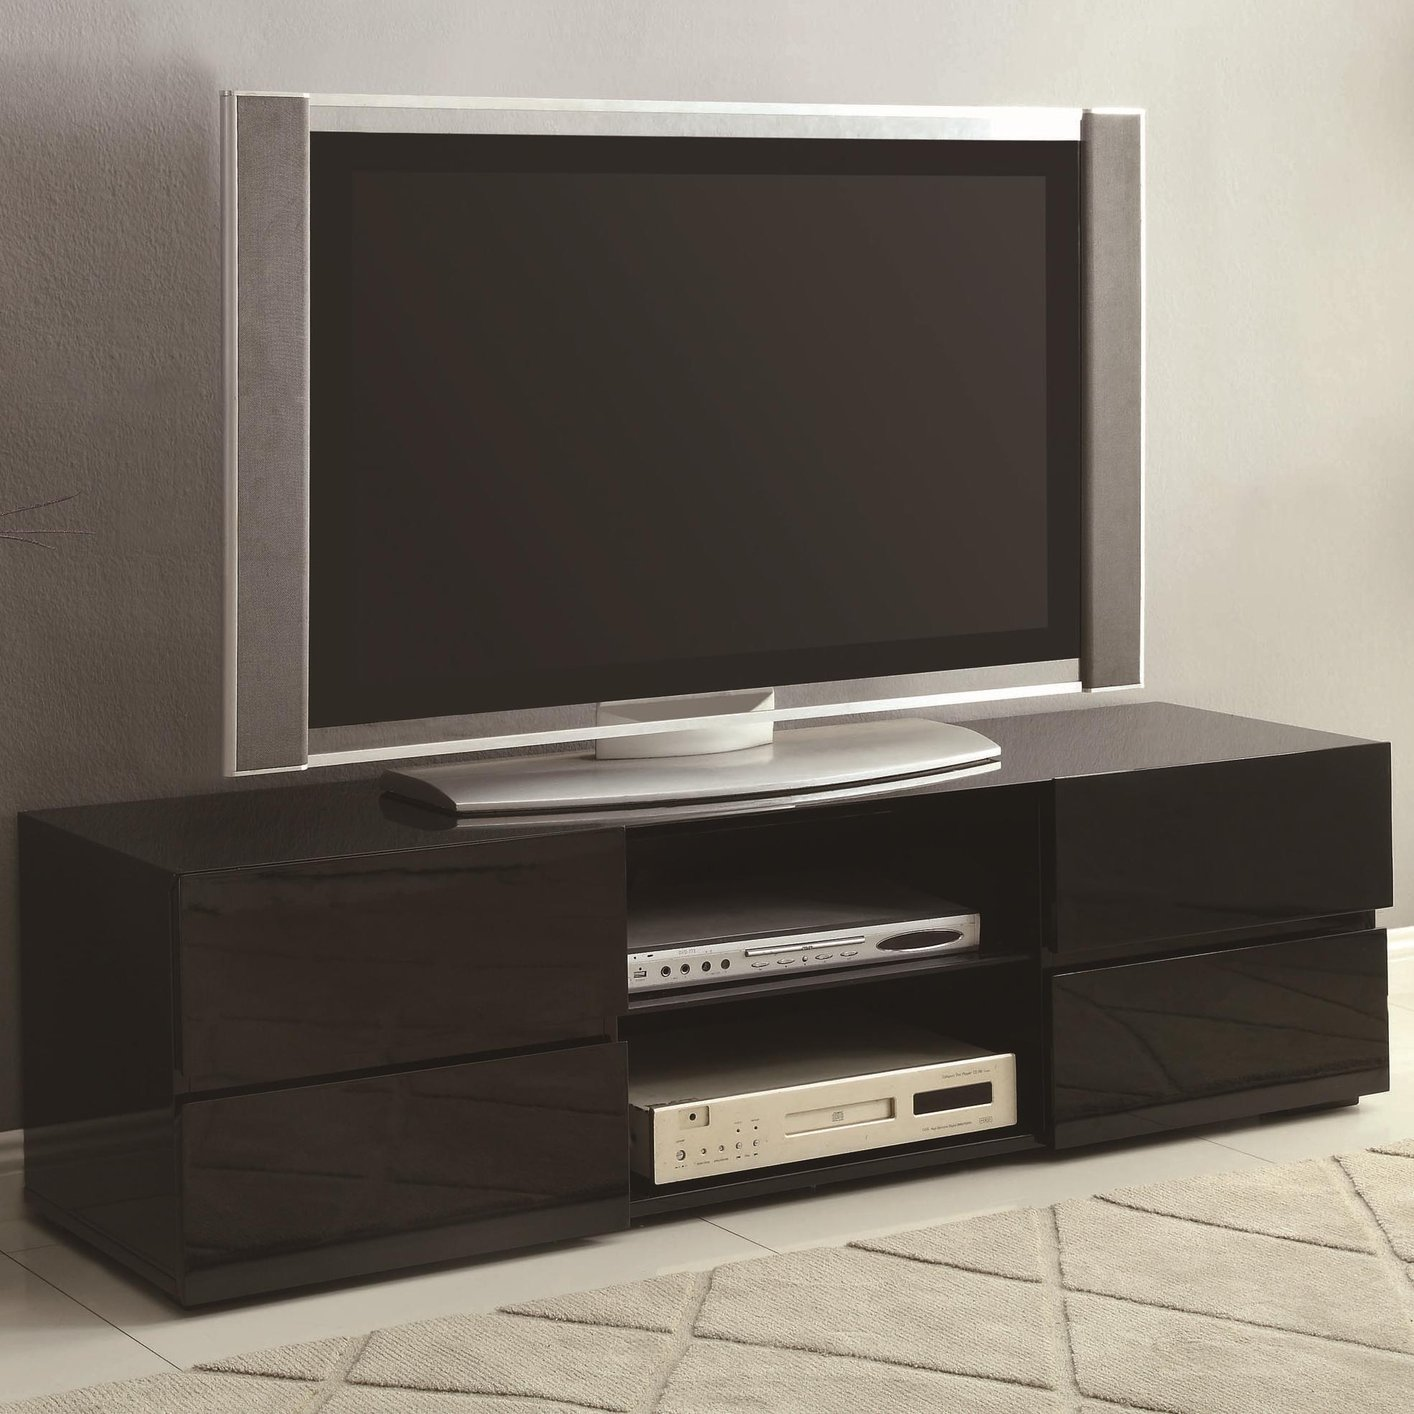 Coaster 700841 Black Wood Tv Stand Steal A Sofa